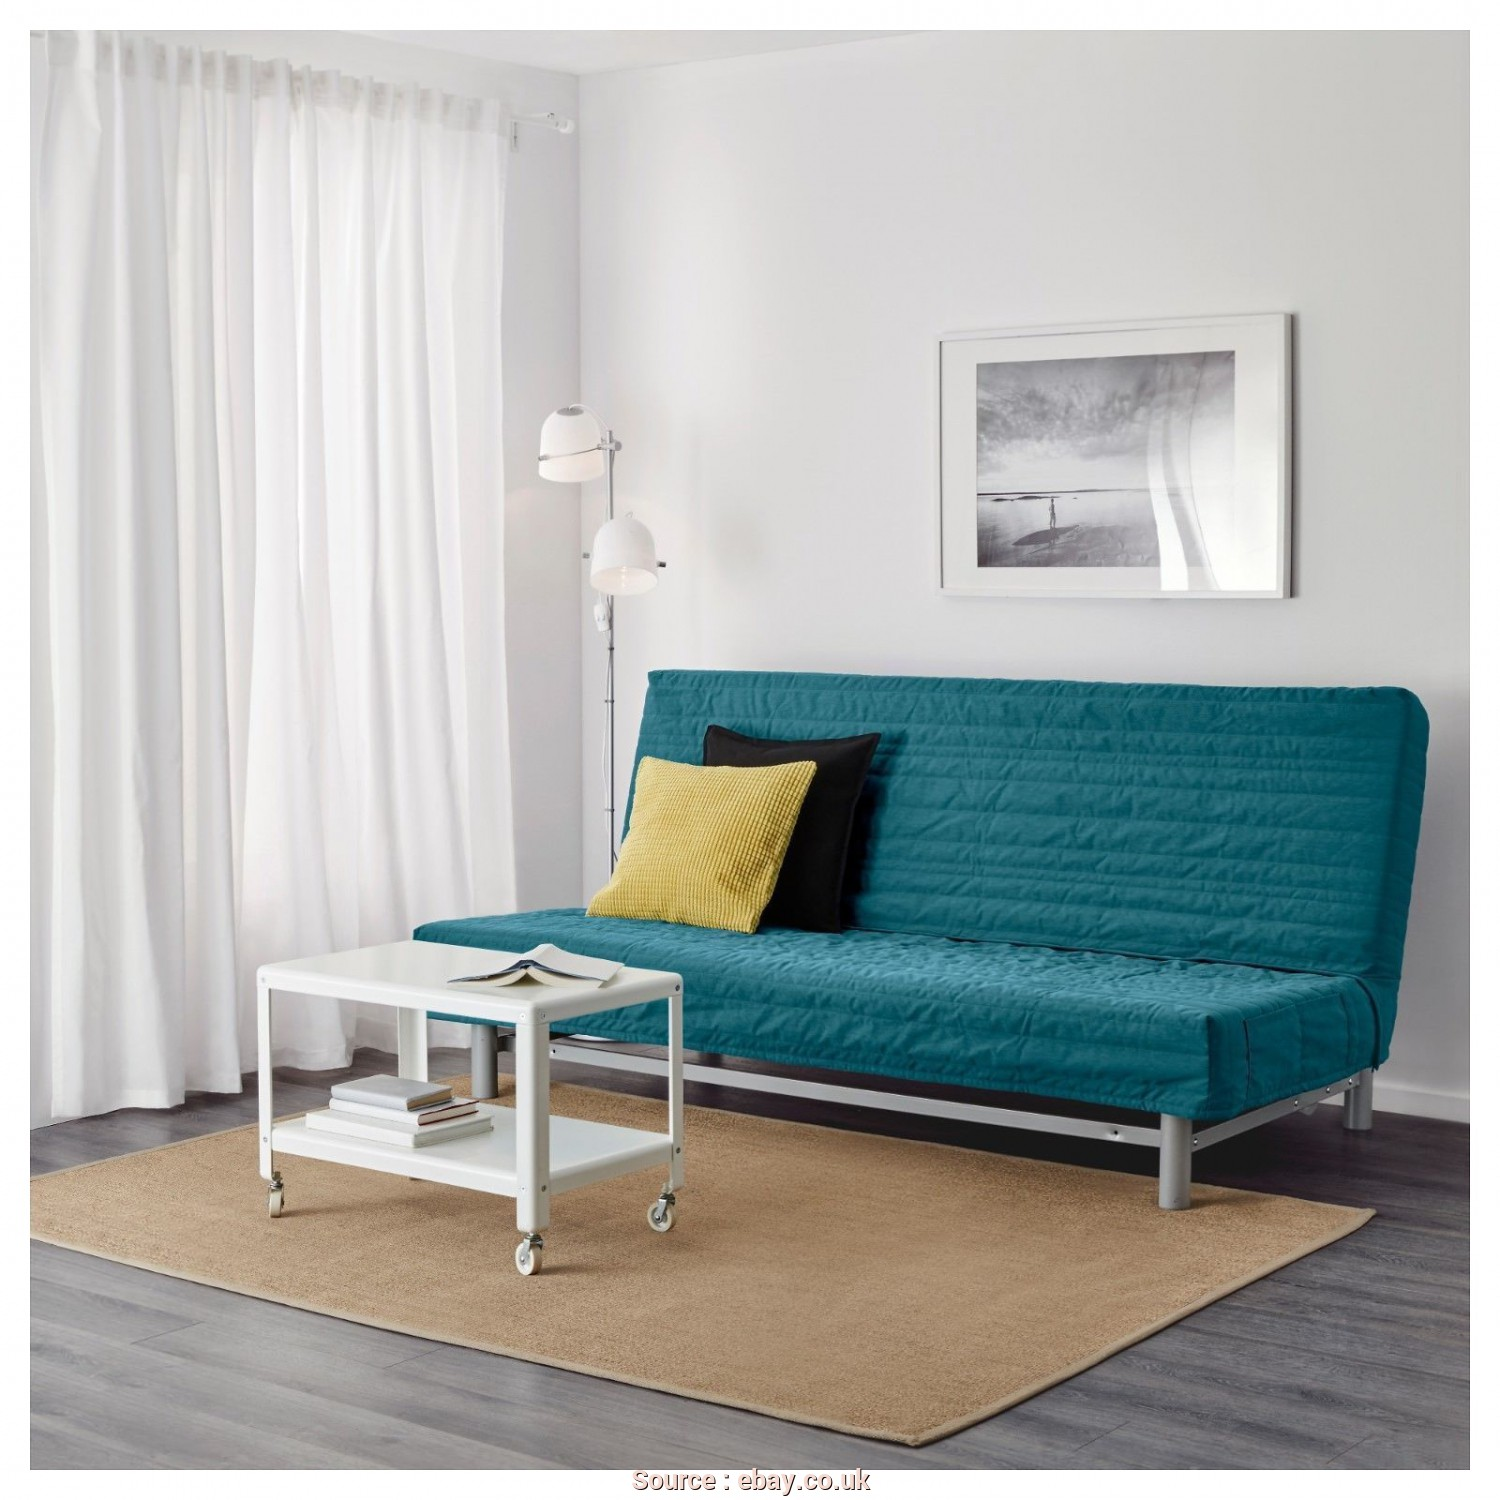 Ikea Beddinge Cover Ebay, Stupefacente New Original IKEA Cover, Beddinge 3 Seat Sofa, In Knisa Turquoise, EBay